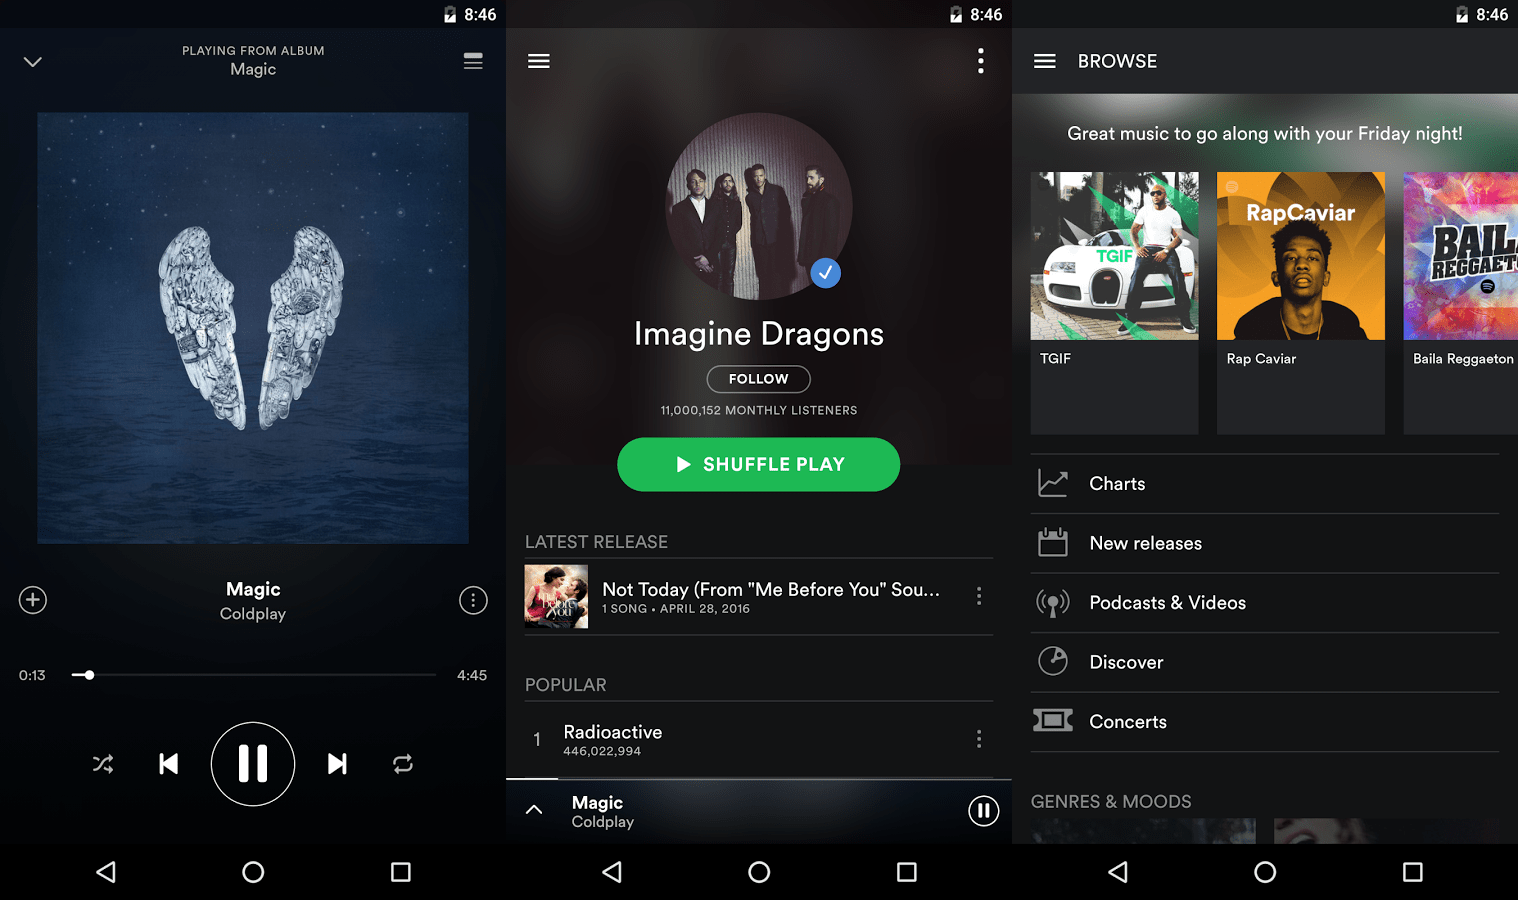 10 Best Music Apps for Android in 2017 | Phandroid